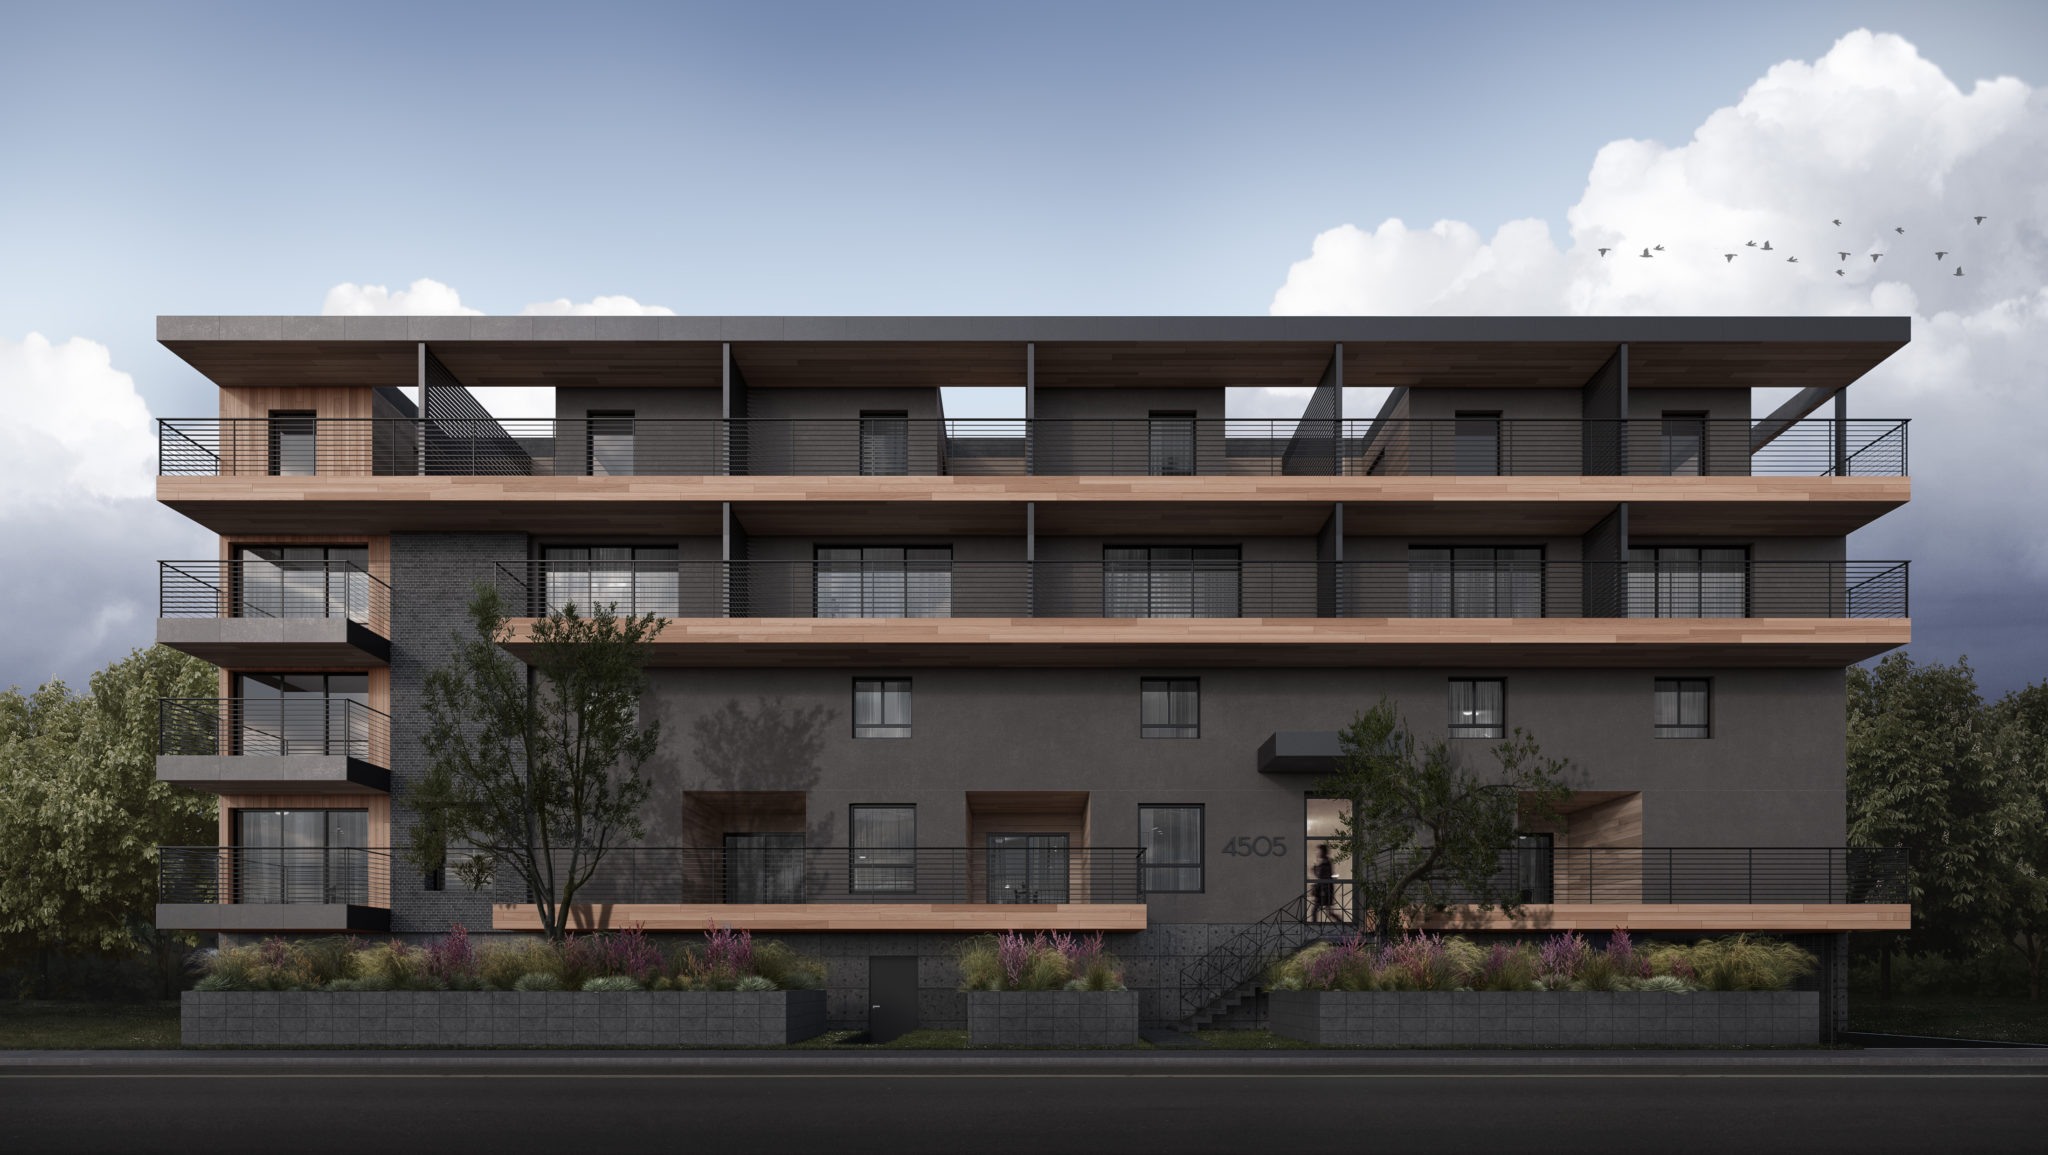 treehouse lofts culver city, luxury apartments, multi family, modern, contemporary, playa vista, venice beach, culver city, marina del rey, silicon beach, los angeles, mar vista, kenihan development, apartments, for rent,